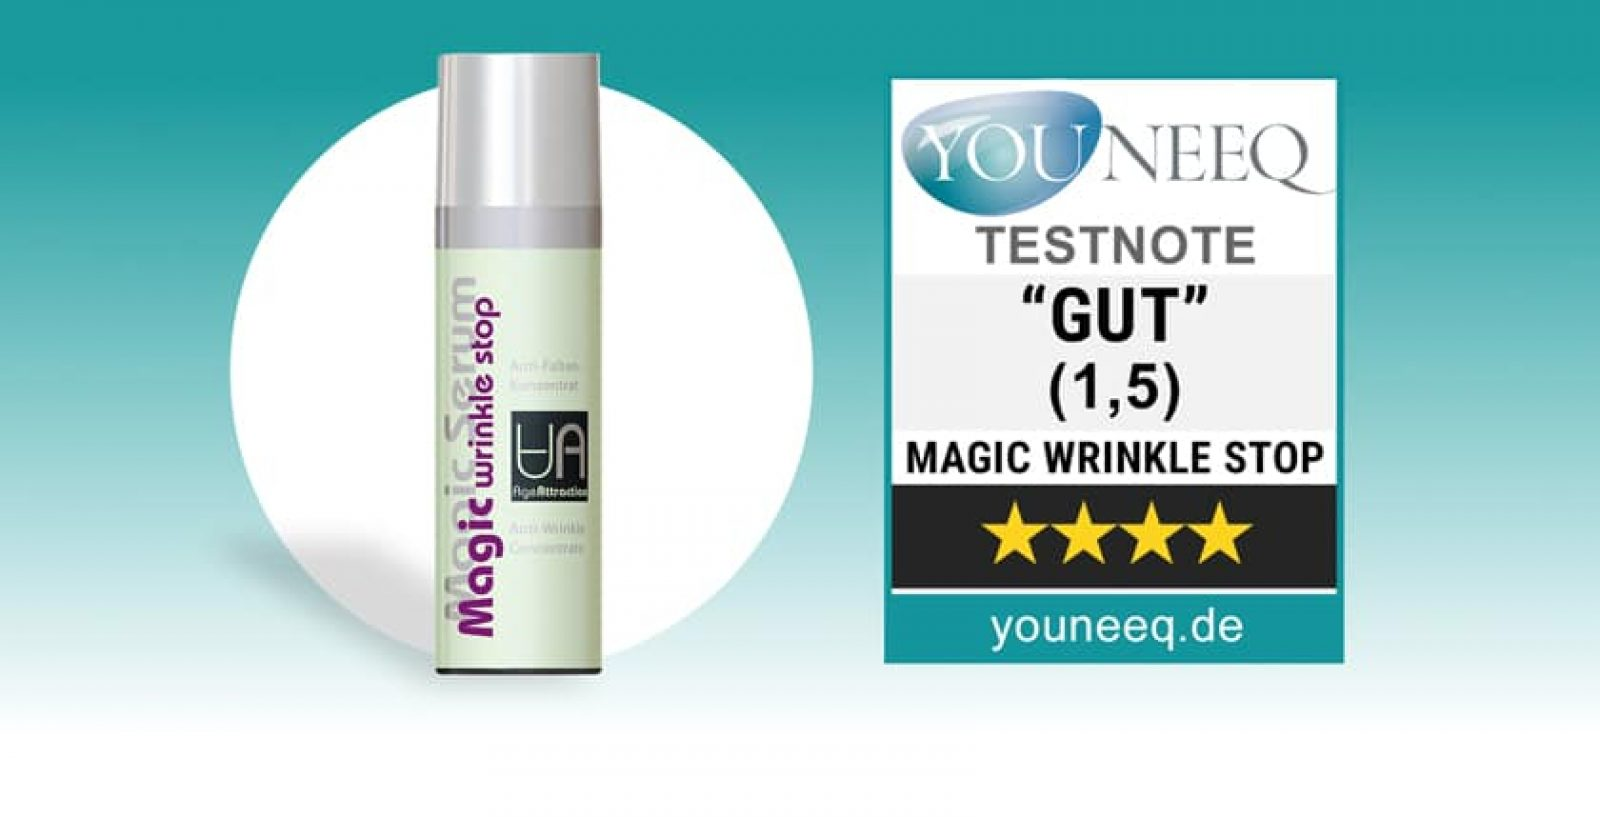 Magic Wrinkle Stop Augencreme Test